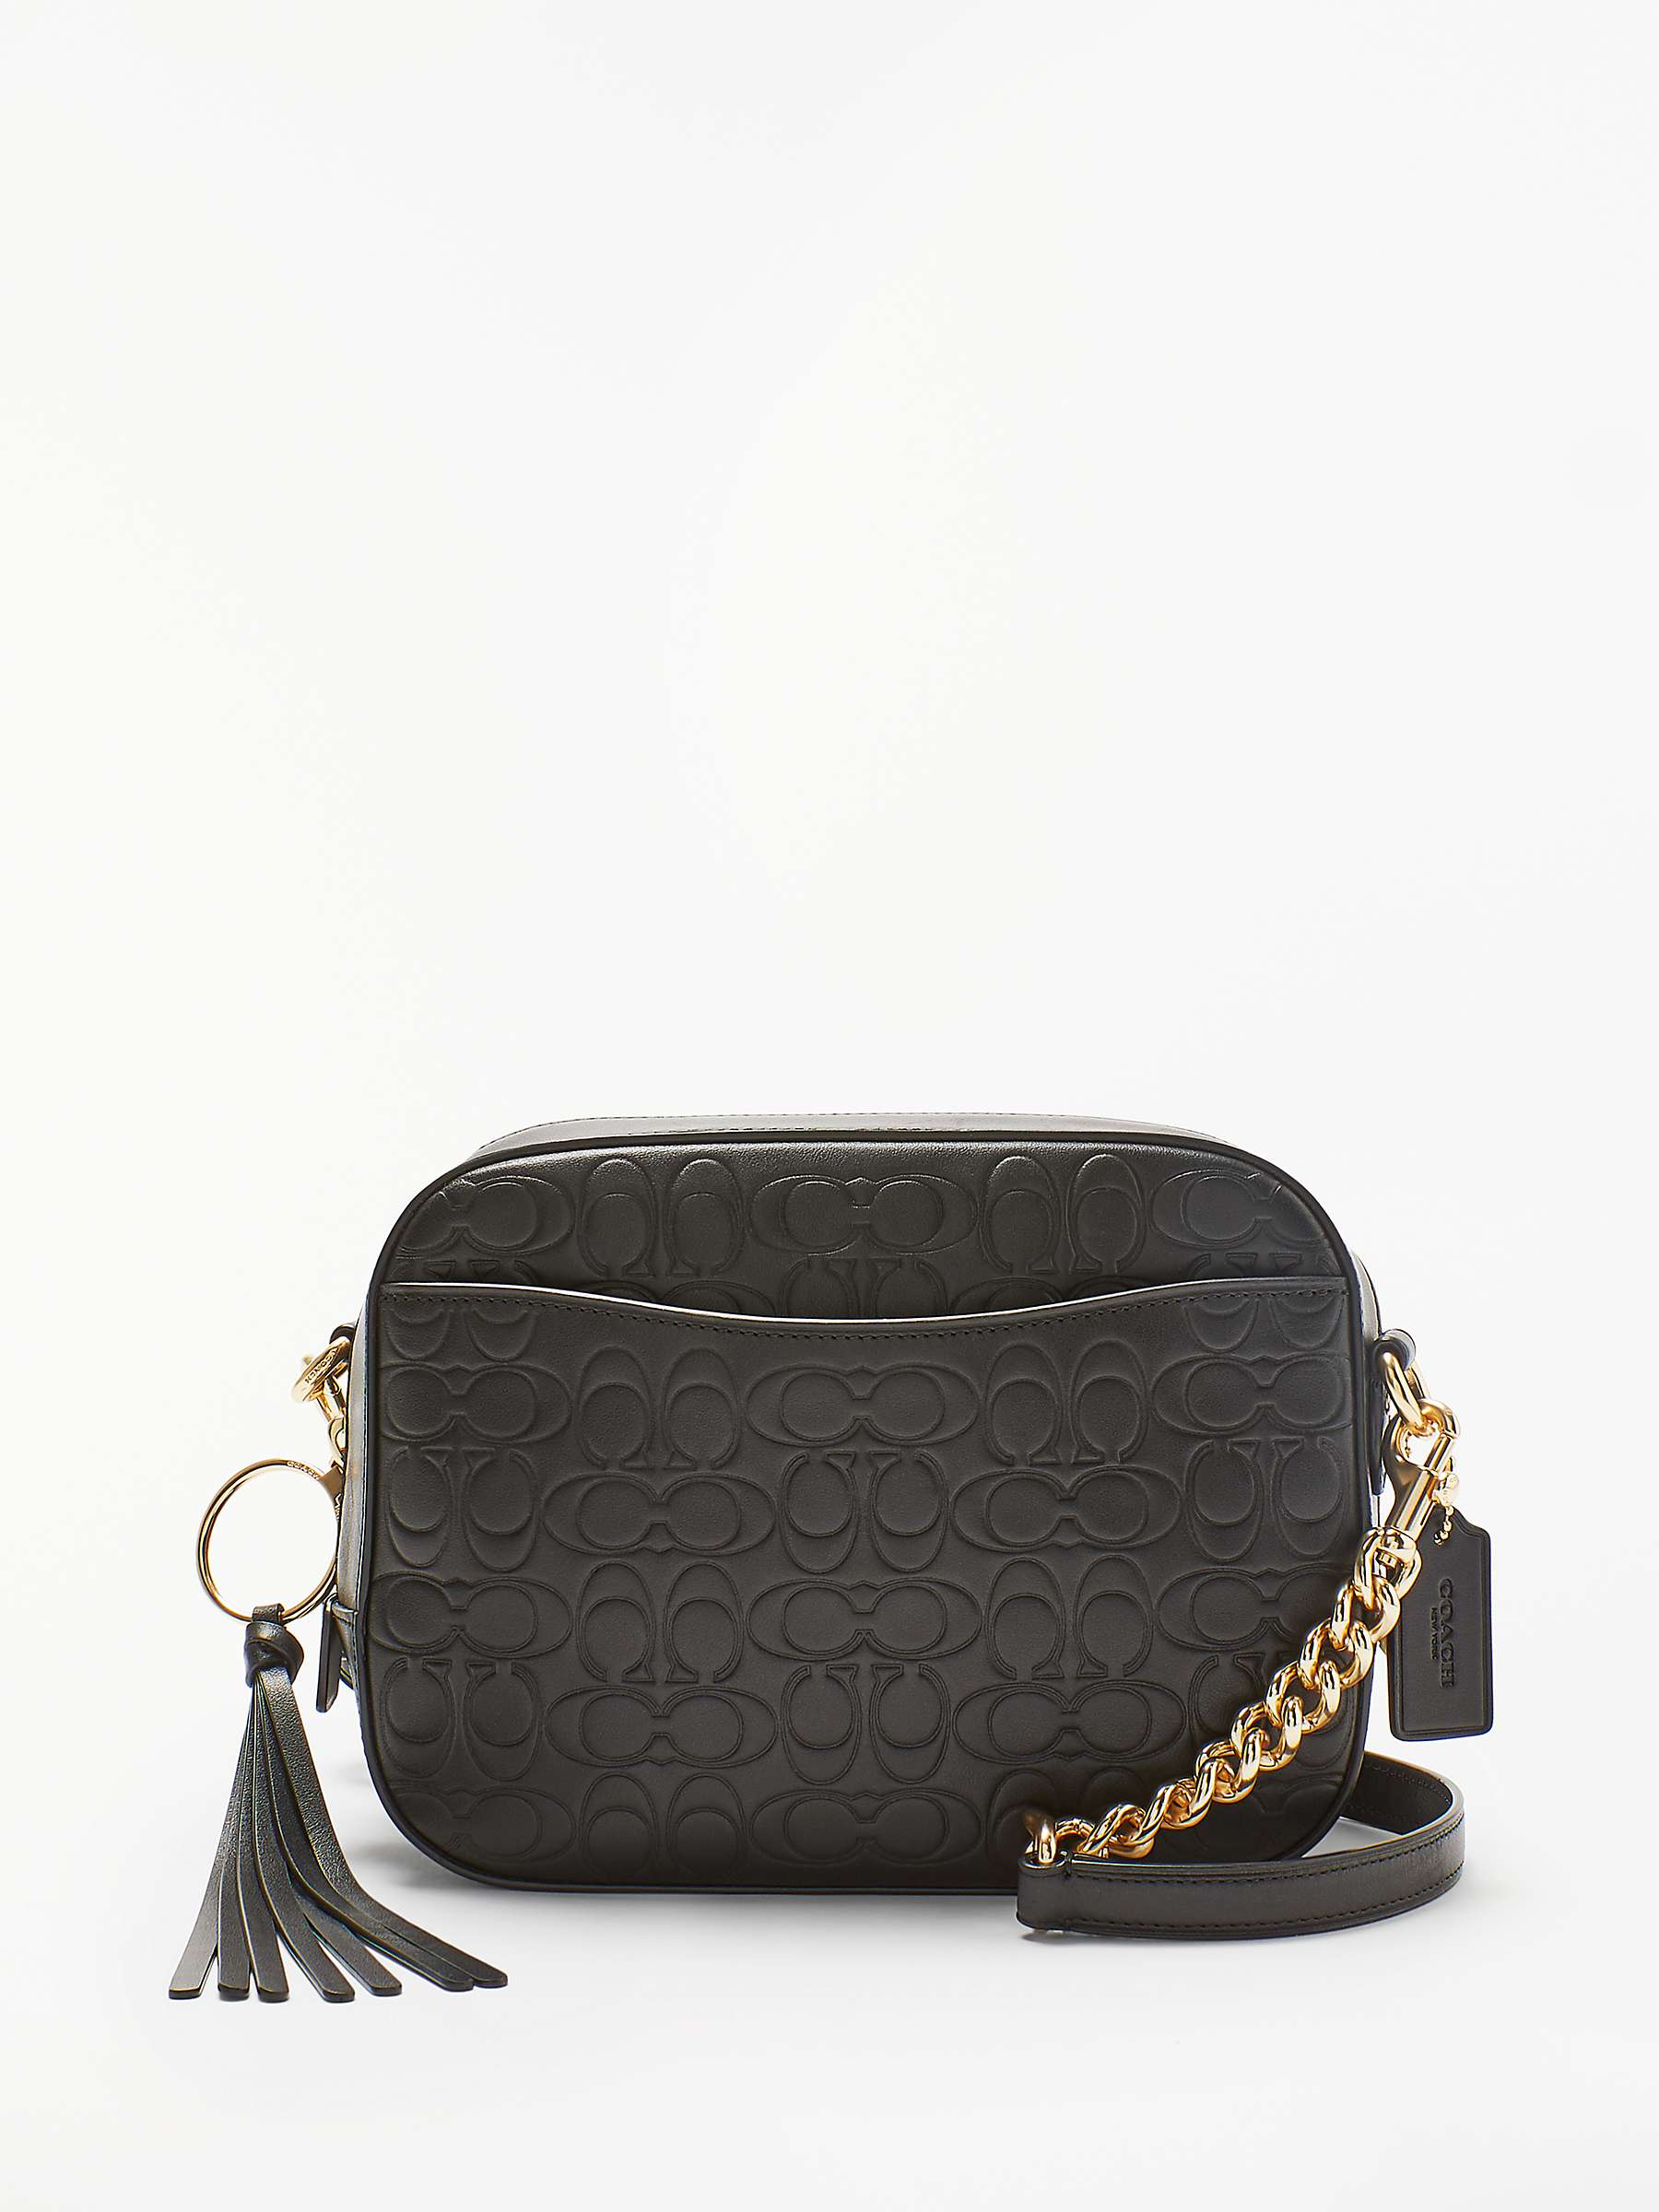 Coach Signature Embossed Leather Camera Bag, Black by John Lewis